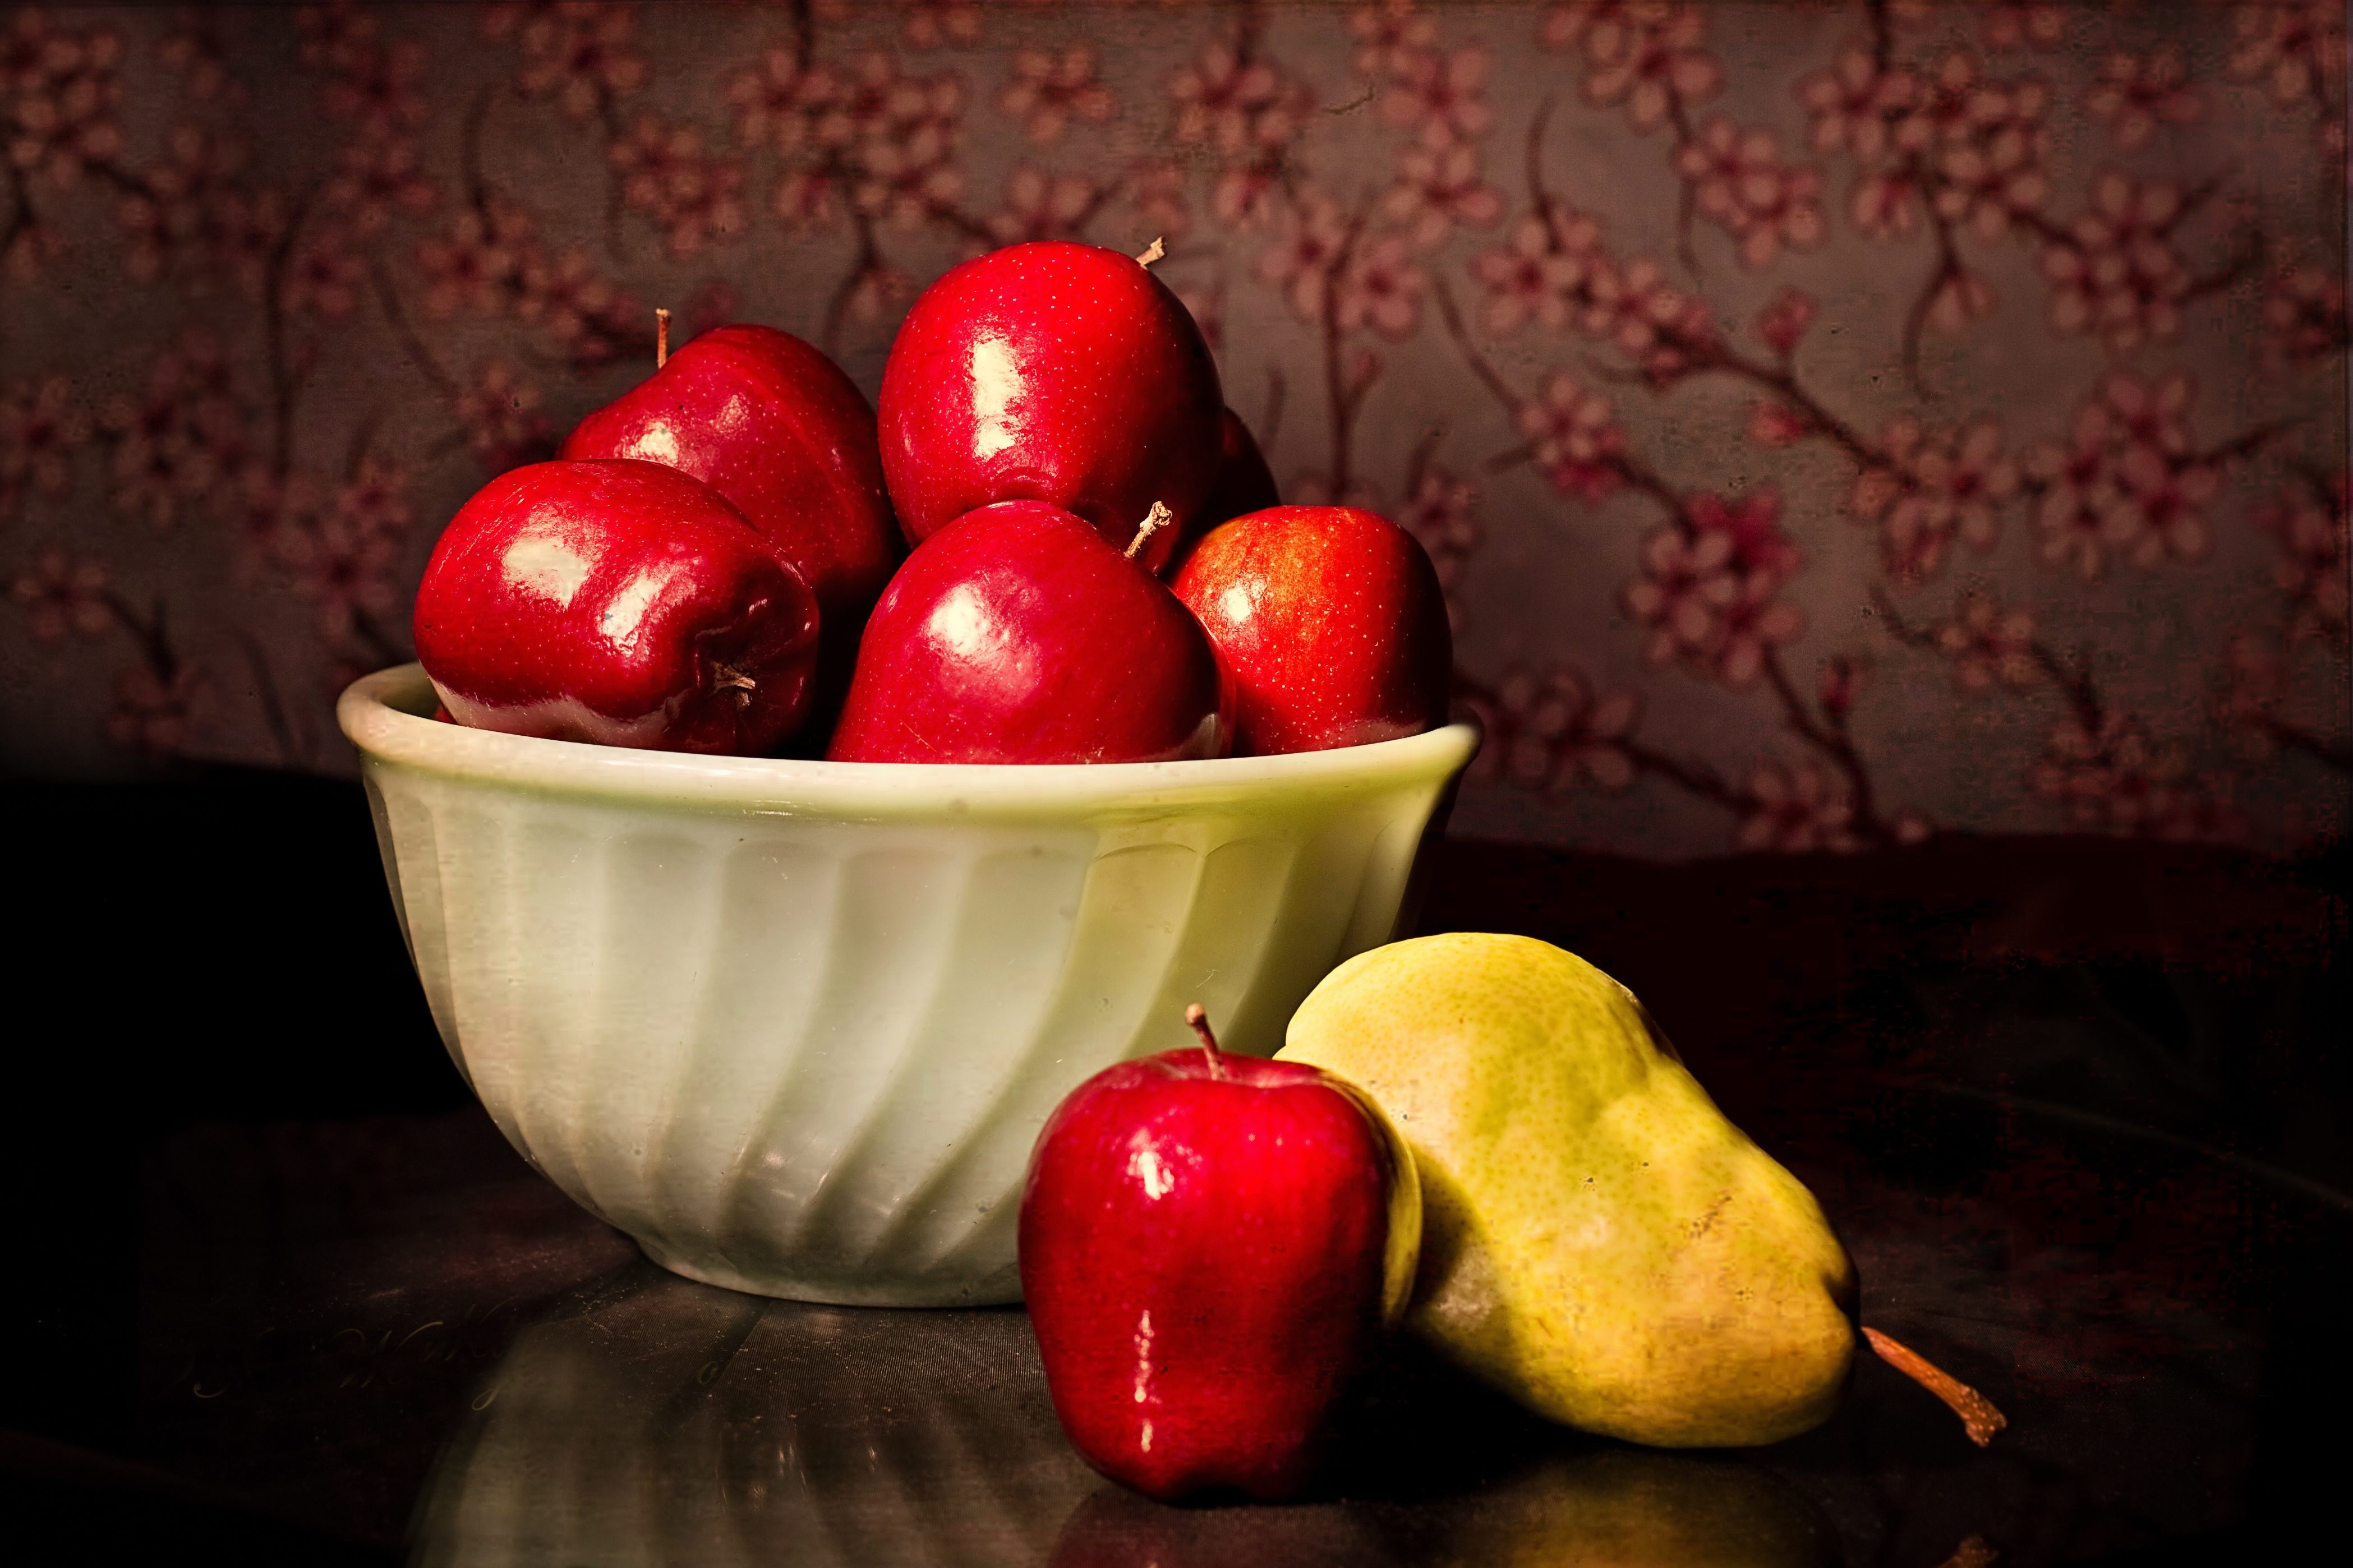 Apples, pears, peaches, asparagus, and artichokes FODMAP foods